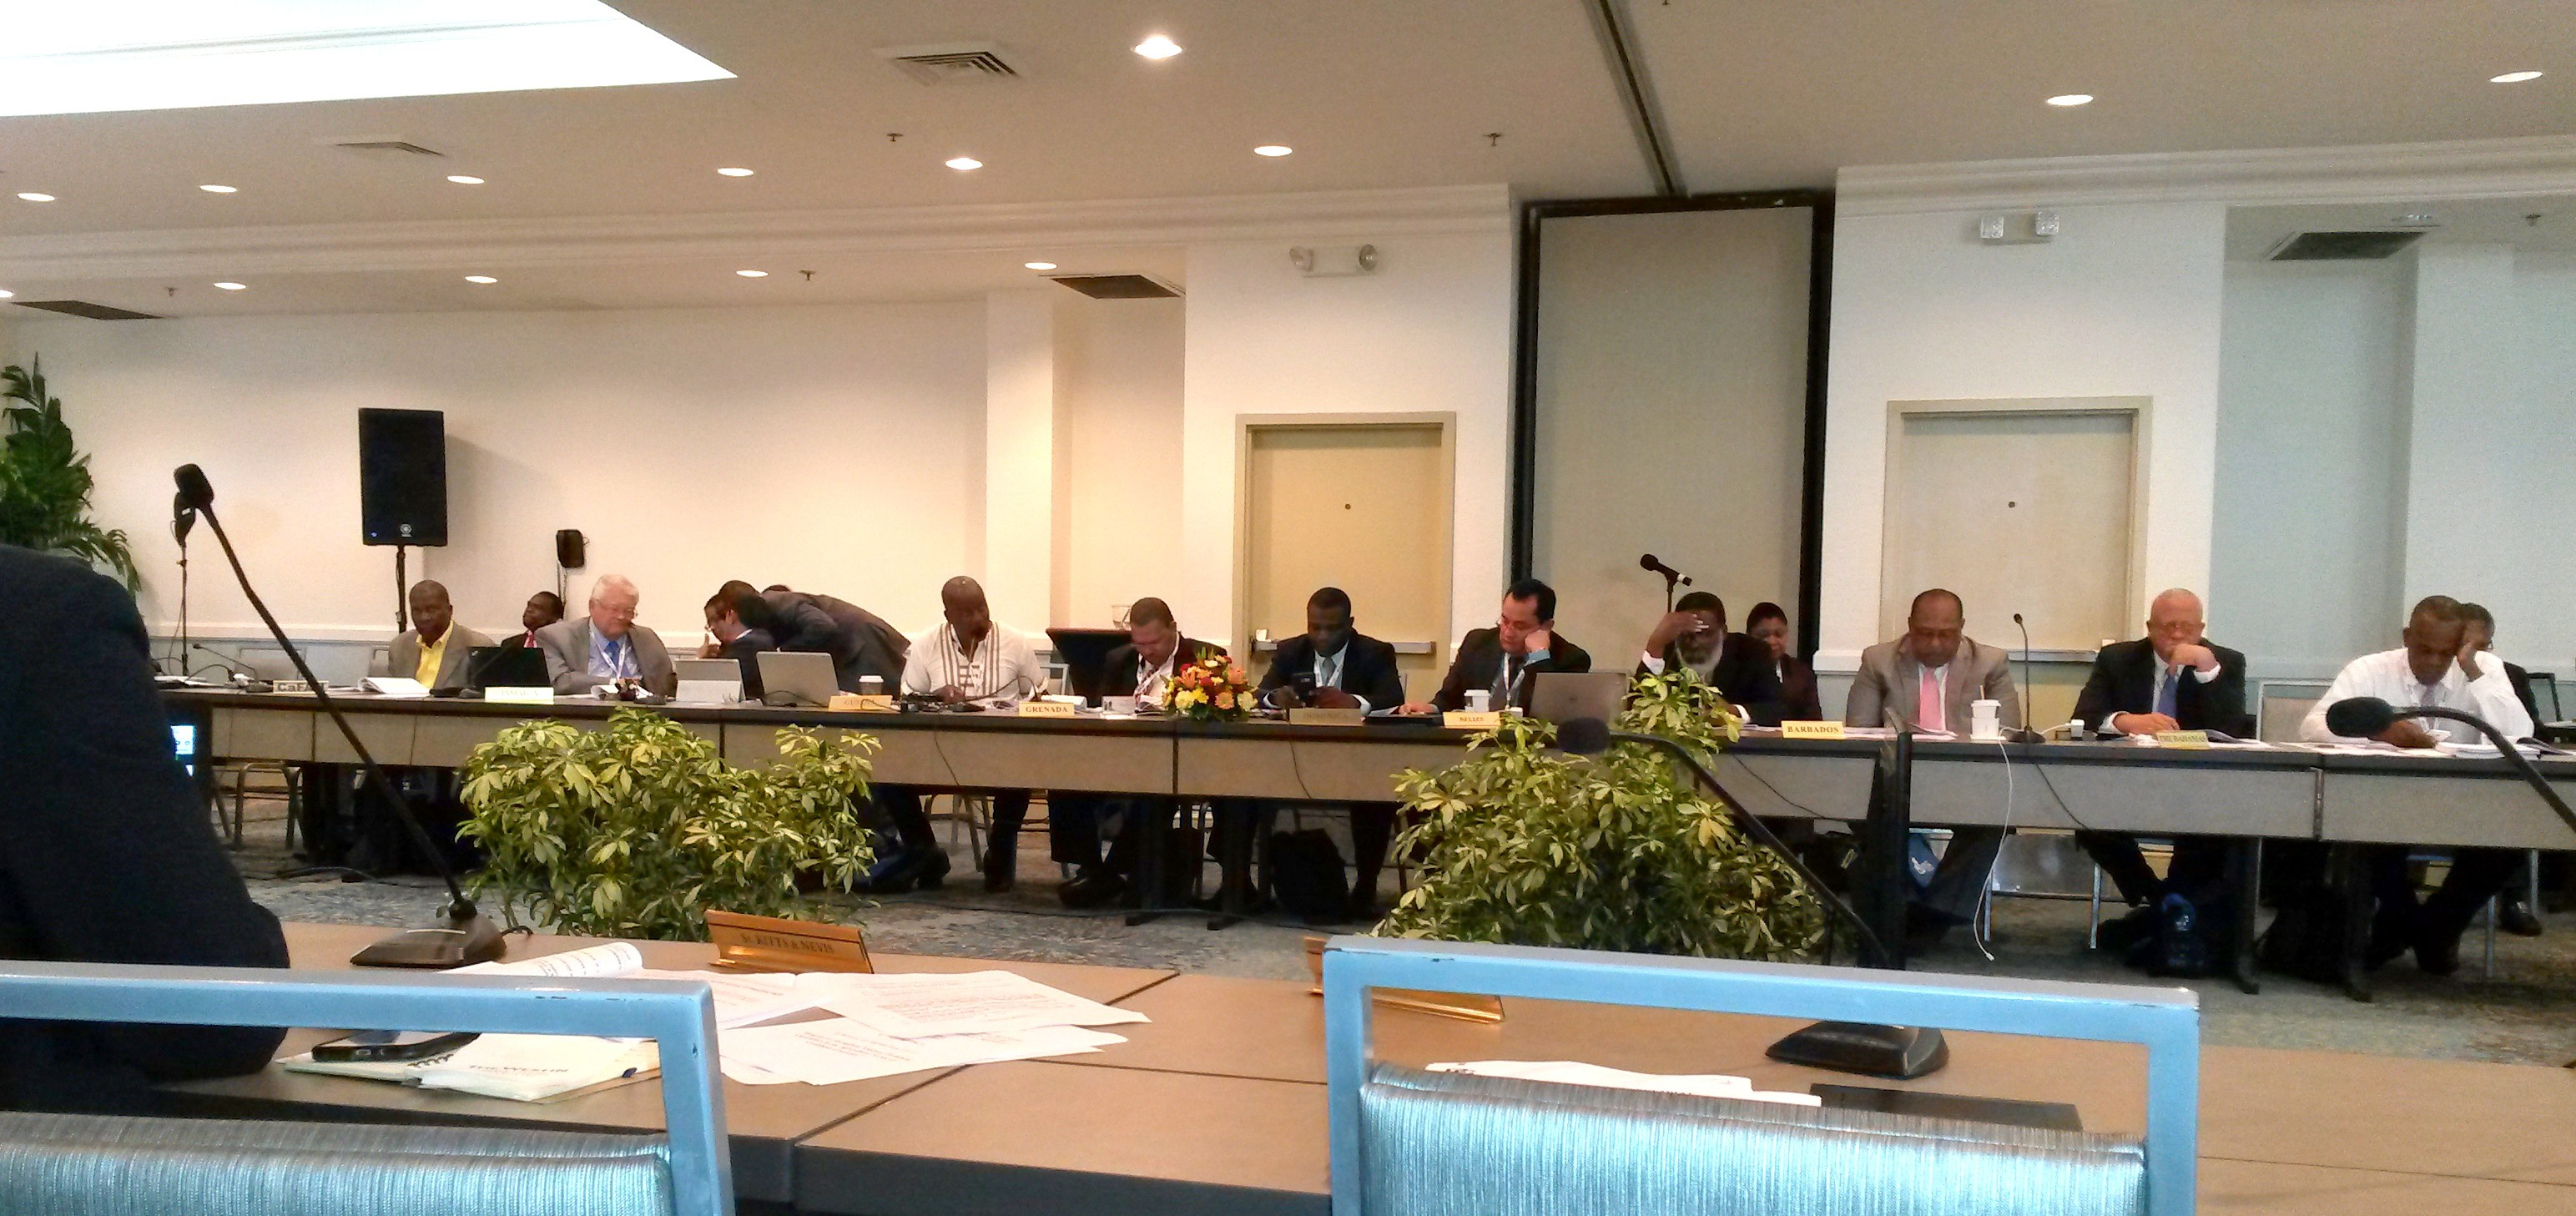 Delegates at the Special COTED on Agriculture in the Cayman Islands on Friday